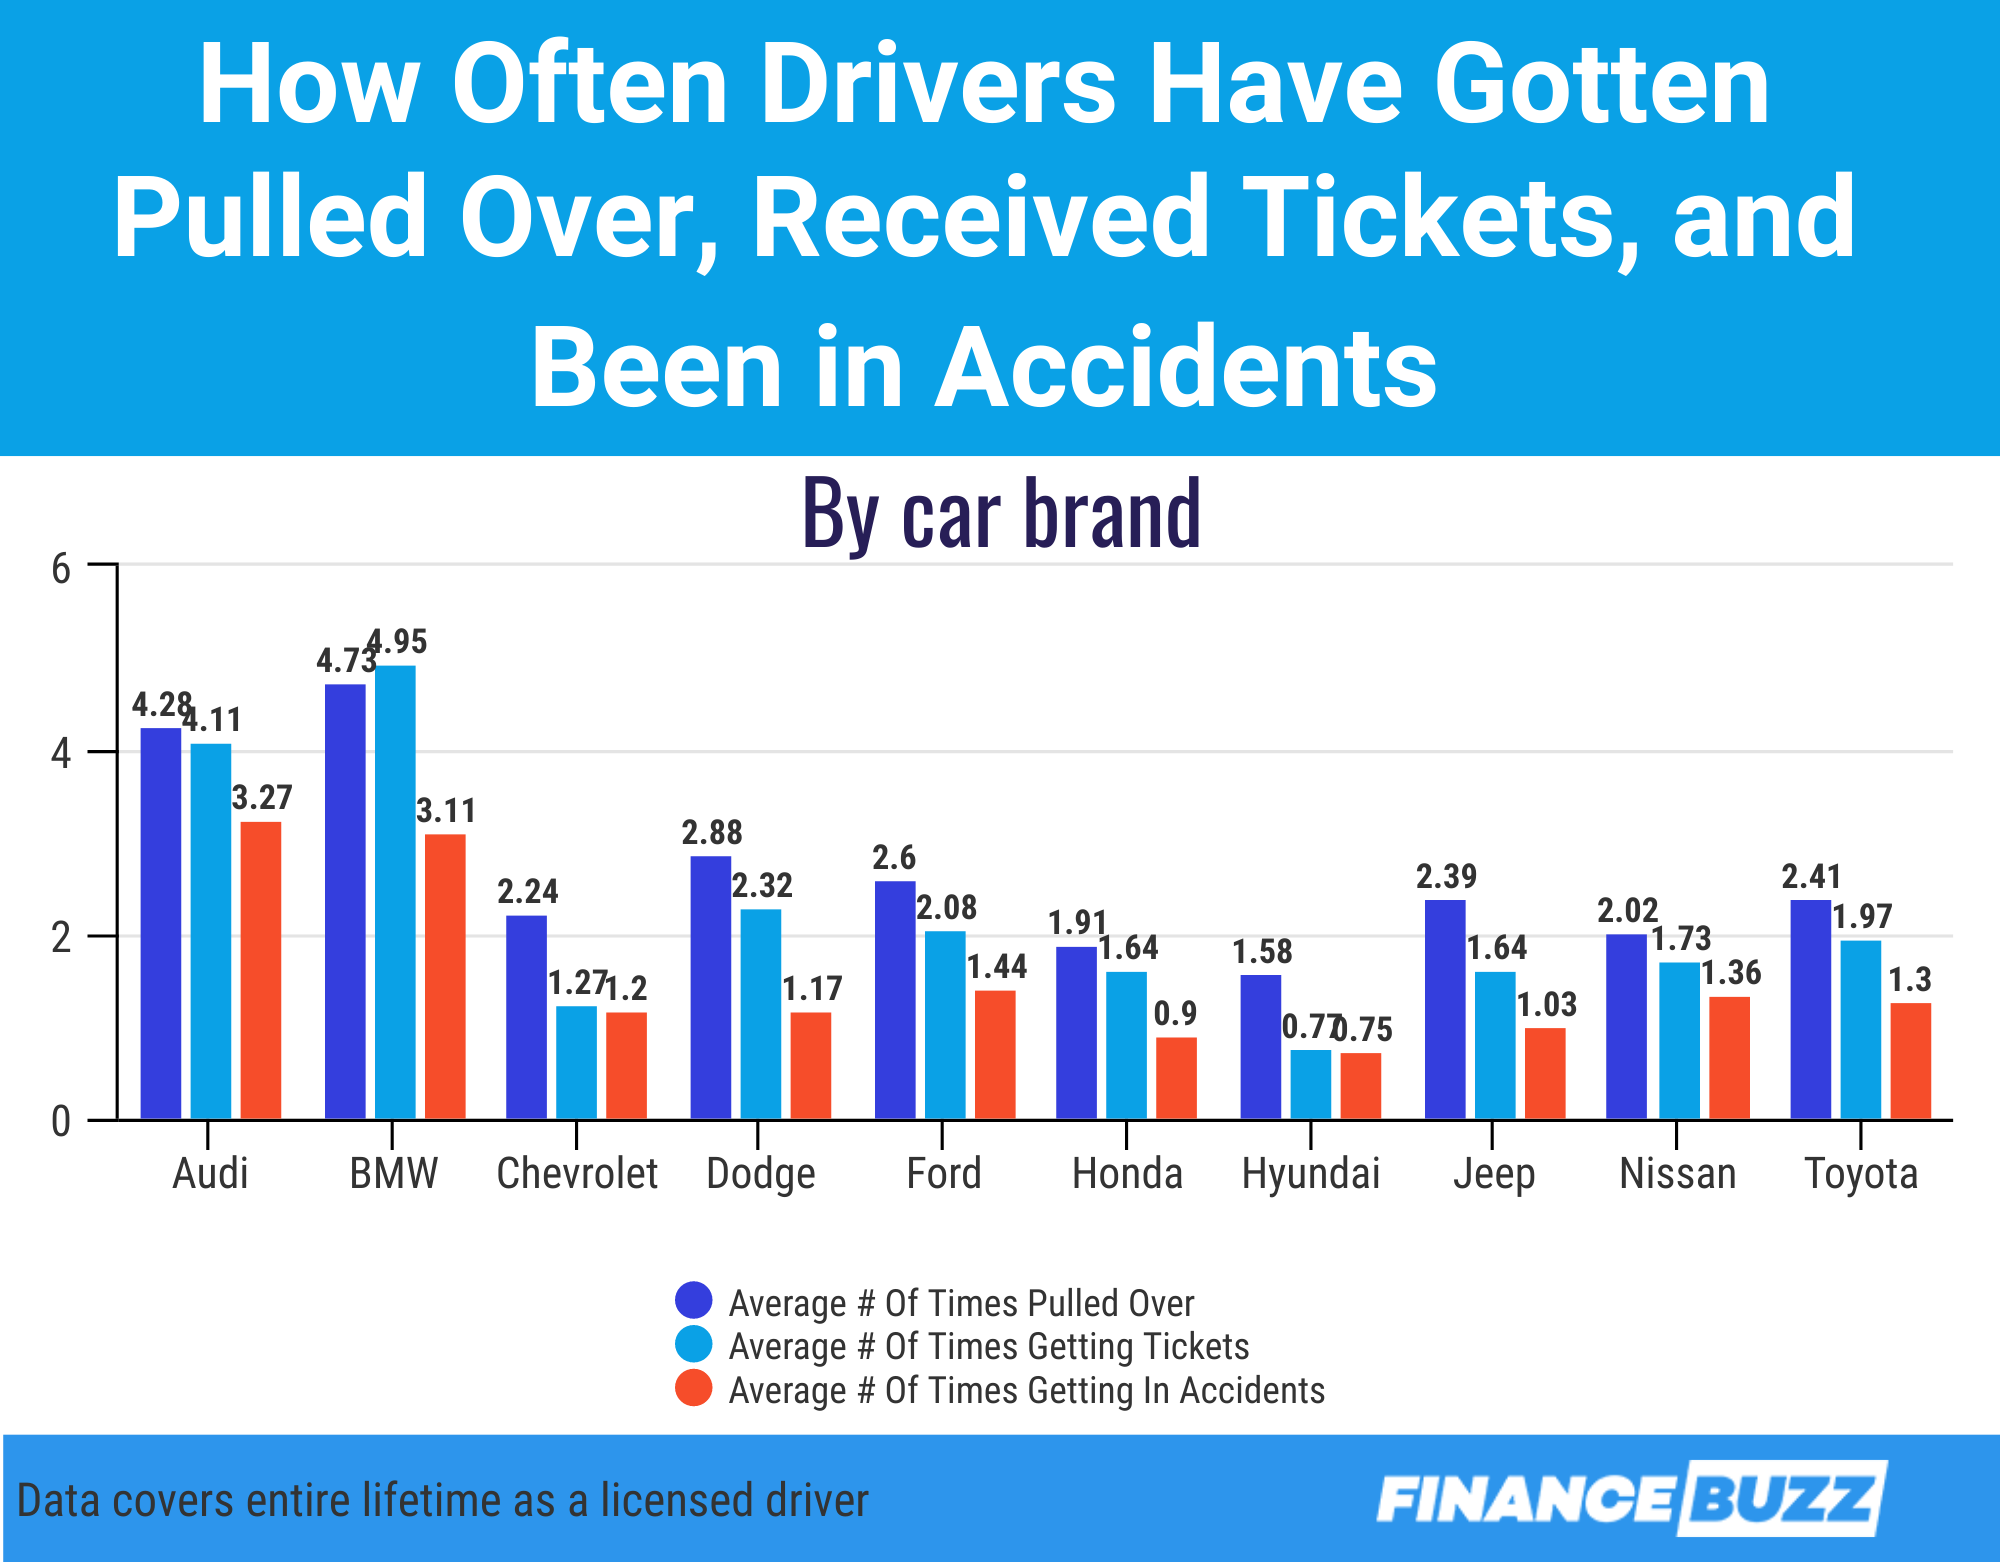 Graphic showing how often drivers of different car brands have gotten tickets and been in accidents